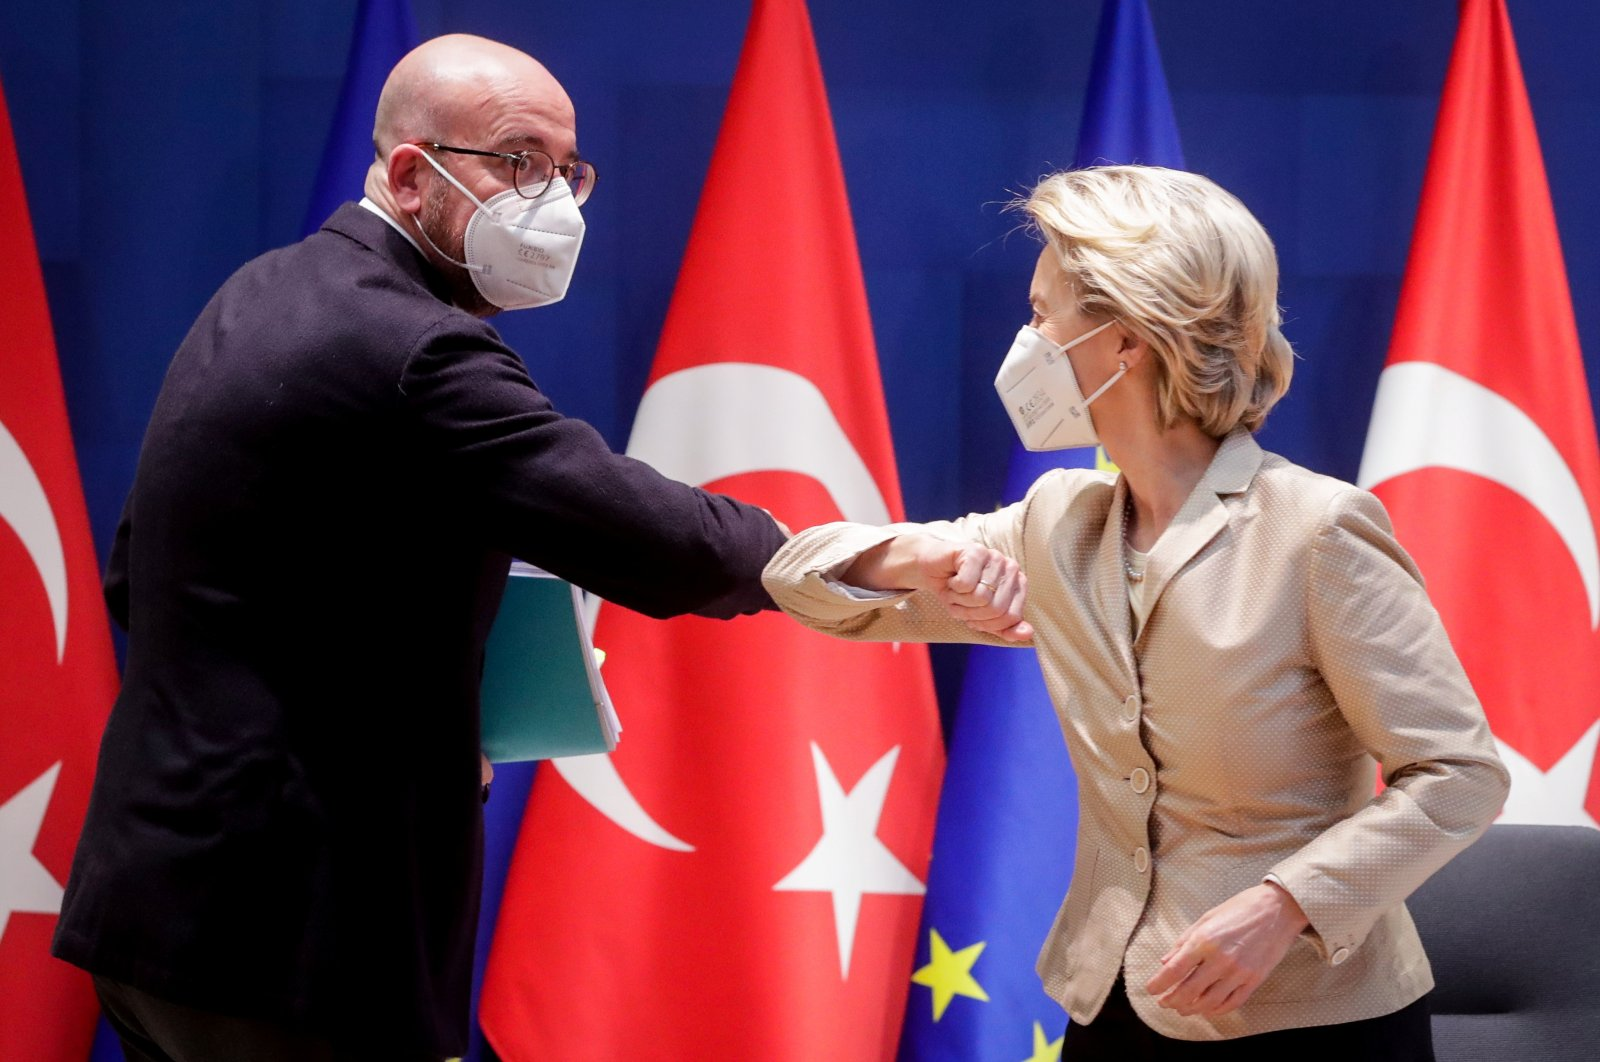 European Commission President Ursula von der Leyen elbow bumps with EU Council President Charles Michel at the start of a video call with President Recep Tayyip Erdoğan (not pictured) in Brussels, Belgium, March 19, 2021. (Reuters Photo)